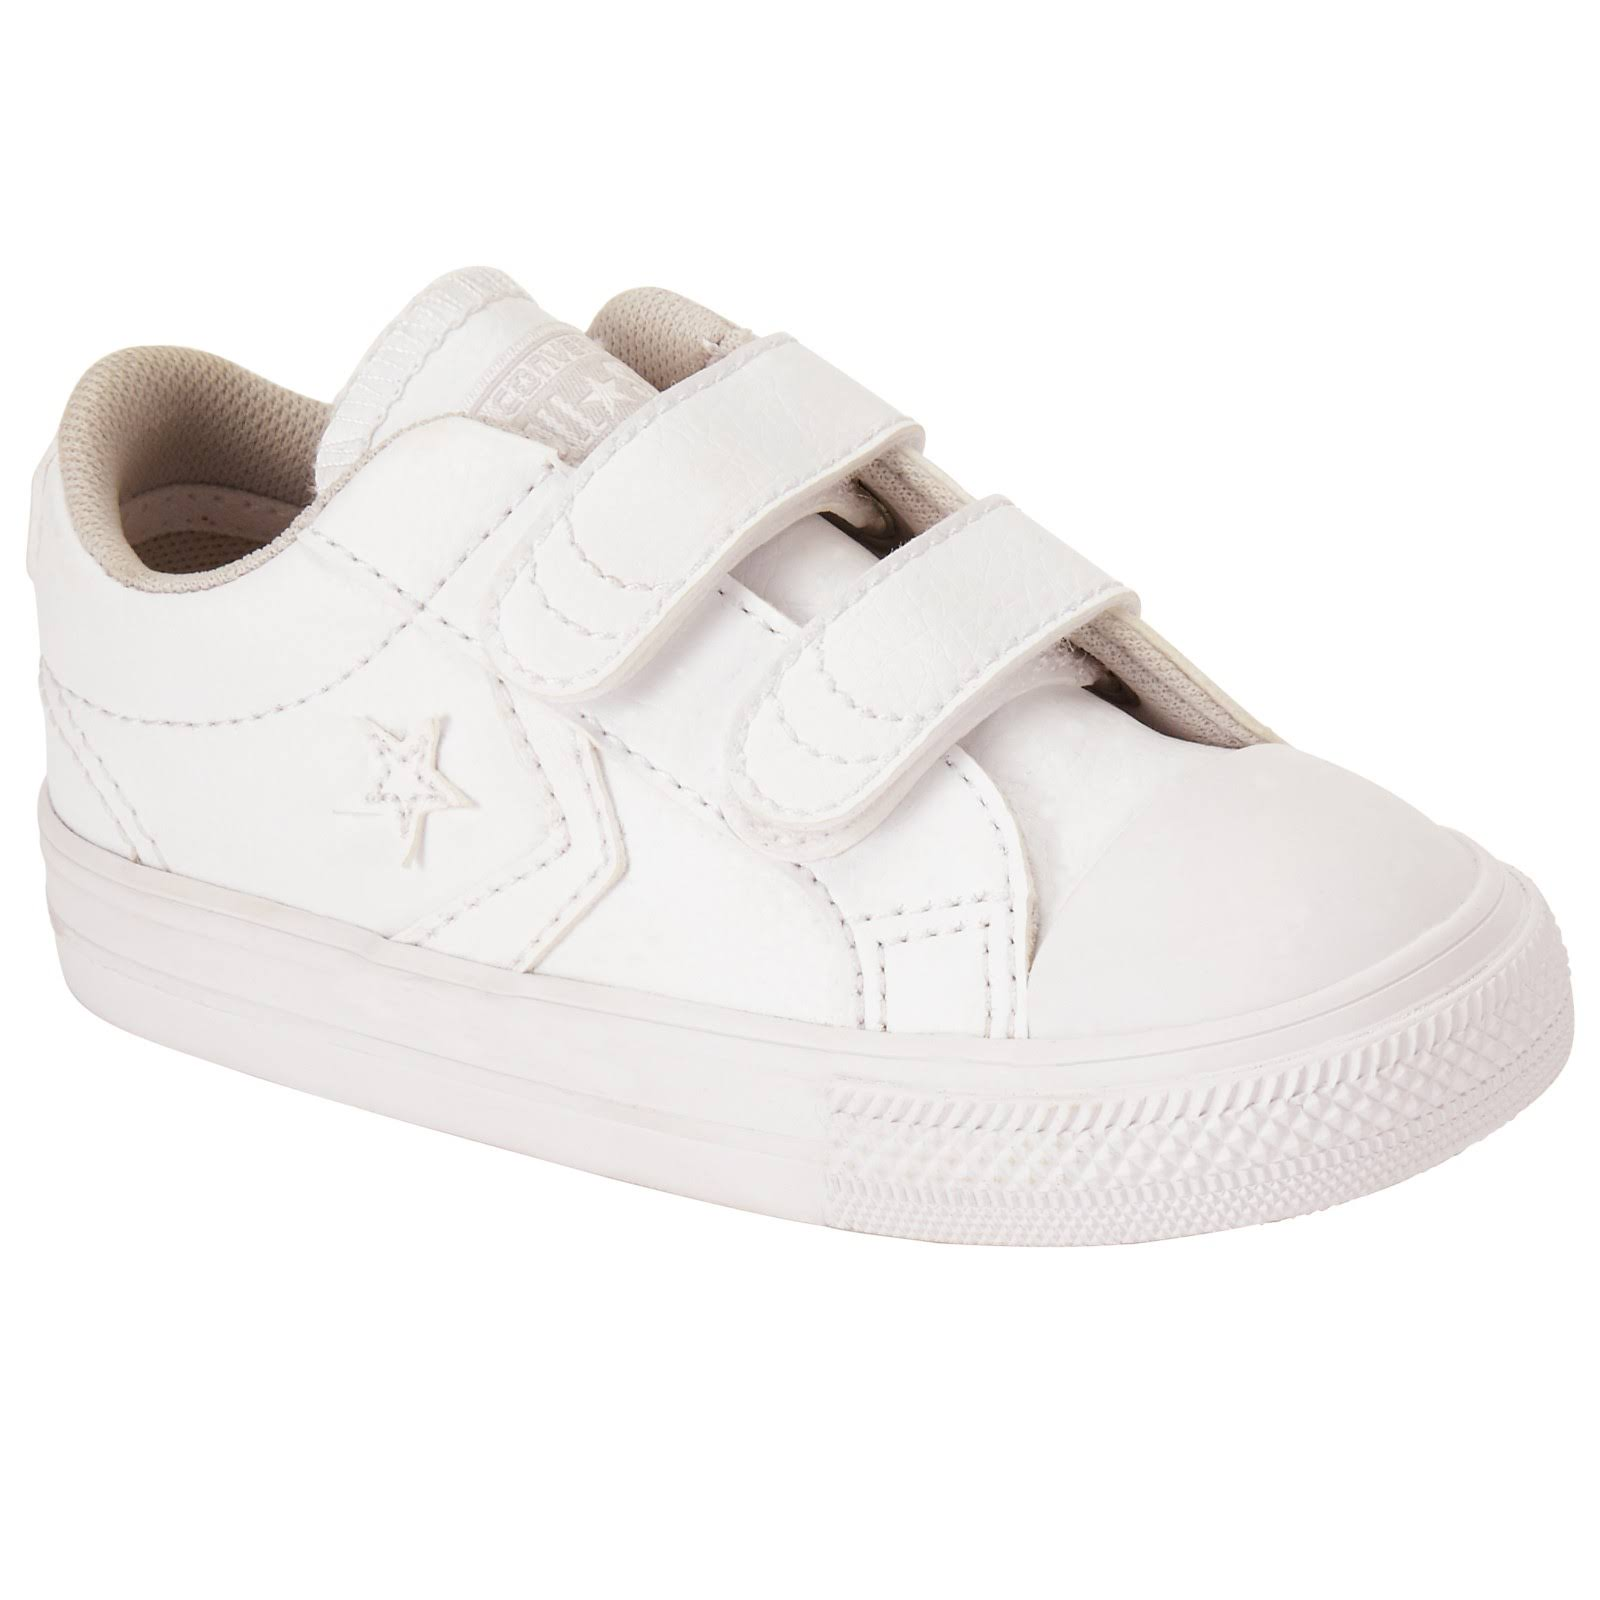 Converse Infant Star Player 2V White Synthetic Trainers Shoes